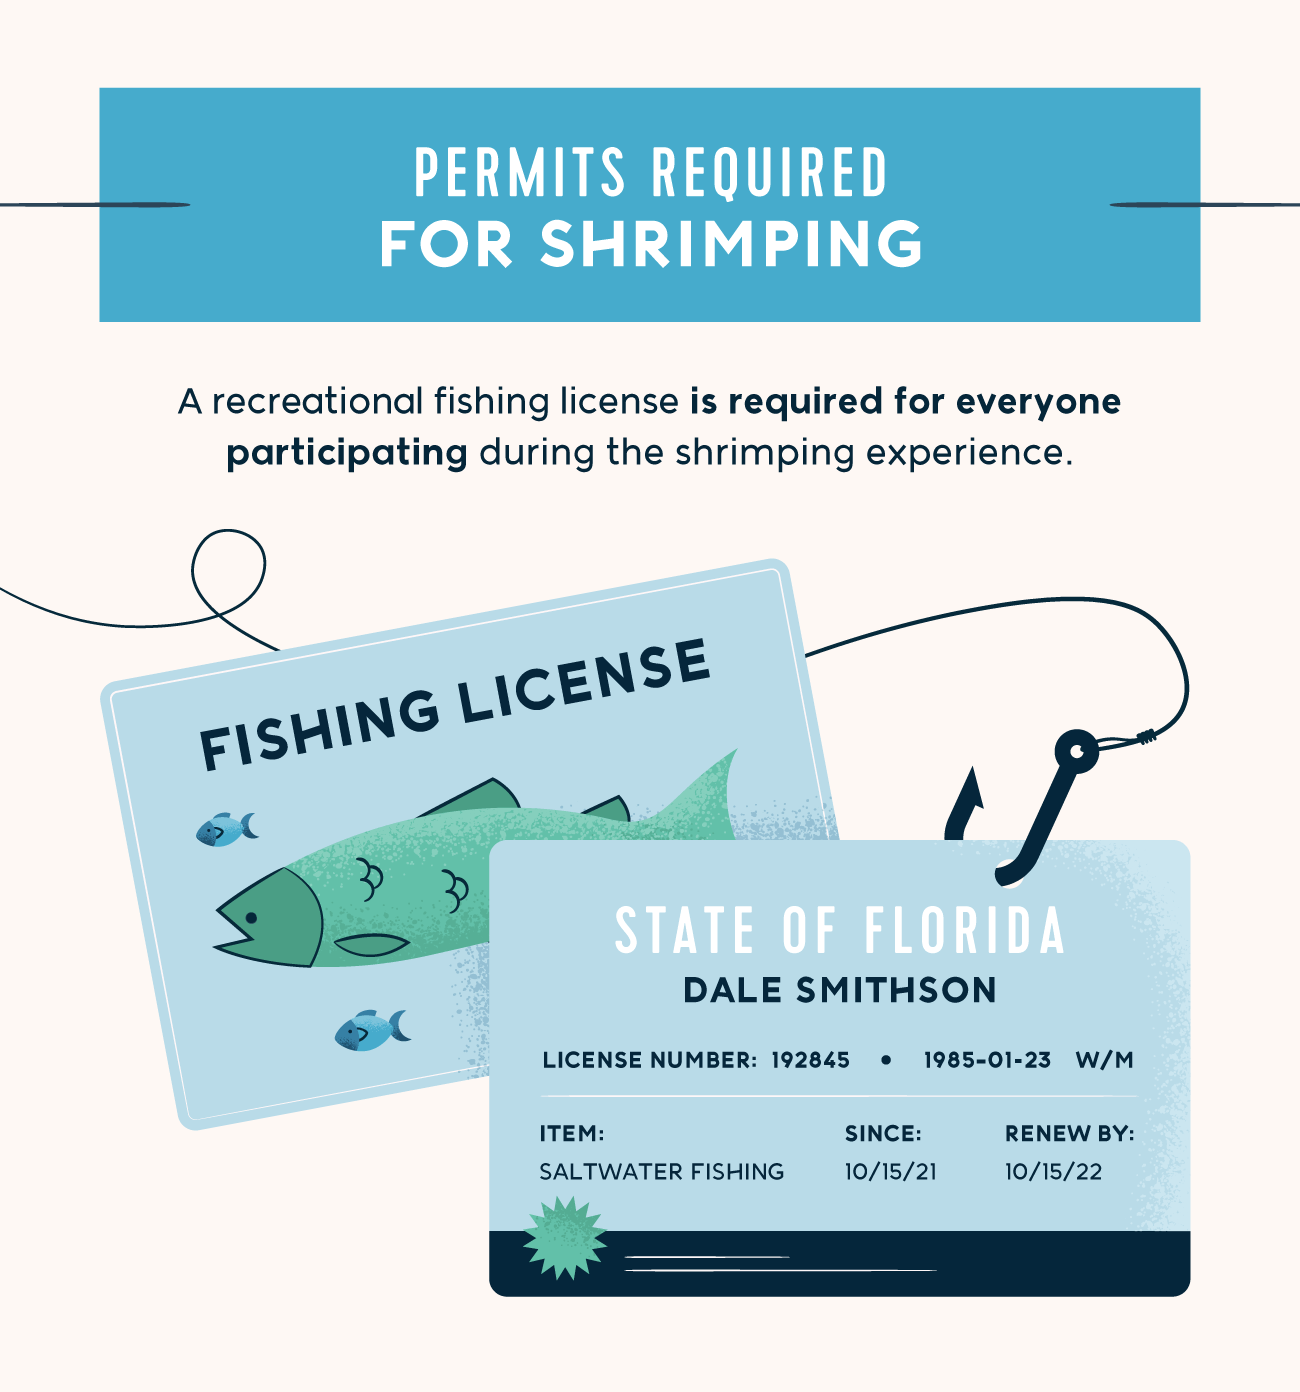 permits required for shrimping